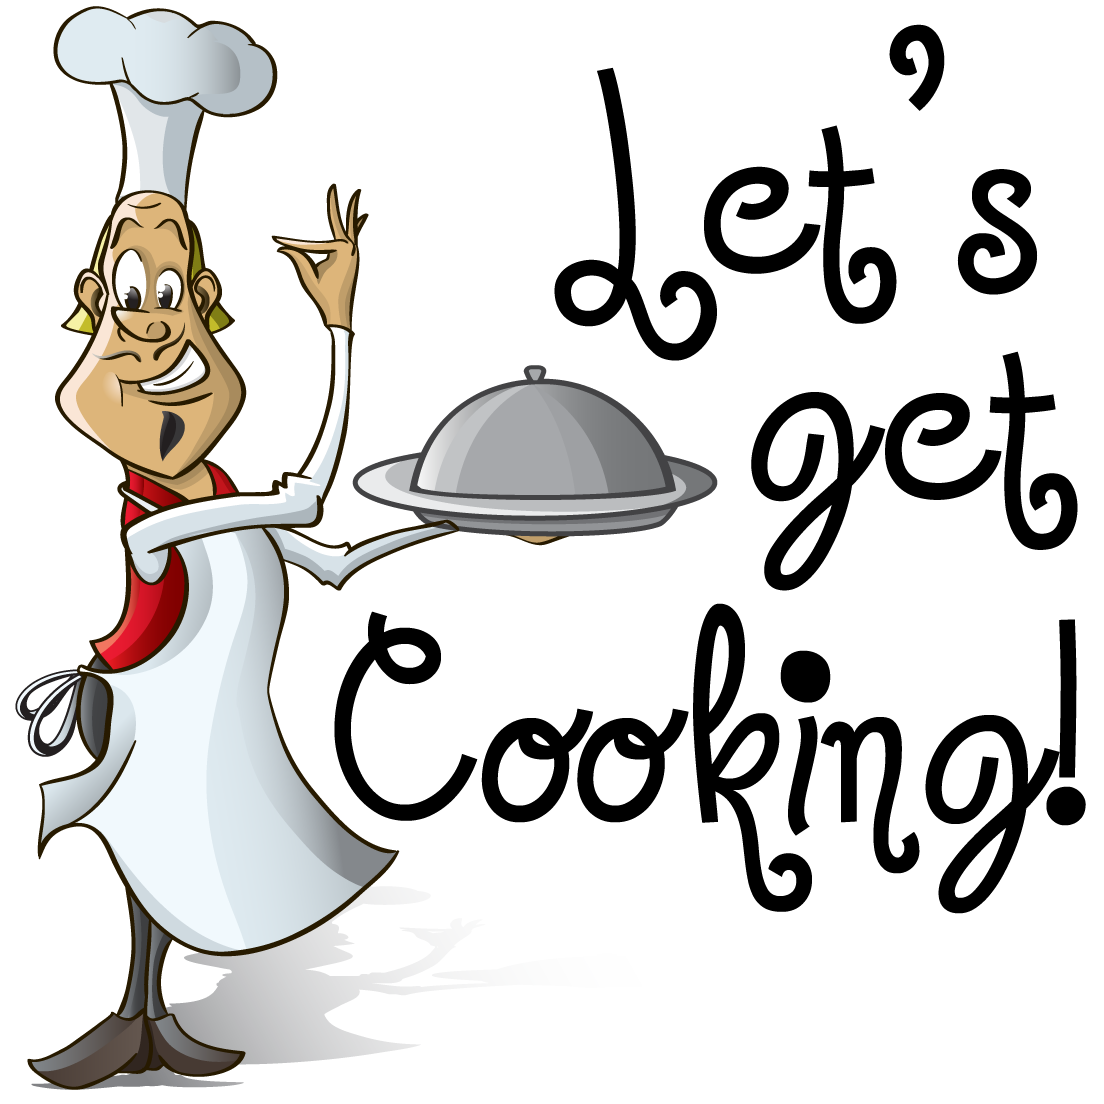 Free Cooking Class Cliparts, Download Free Clip Art, Free Clip Art.